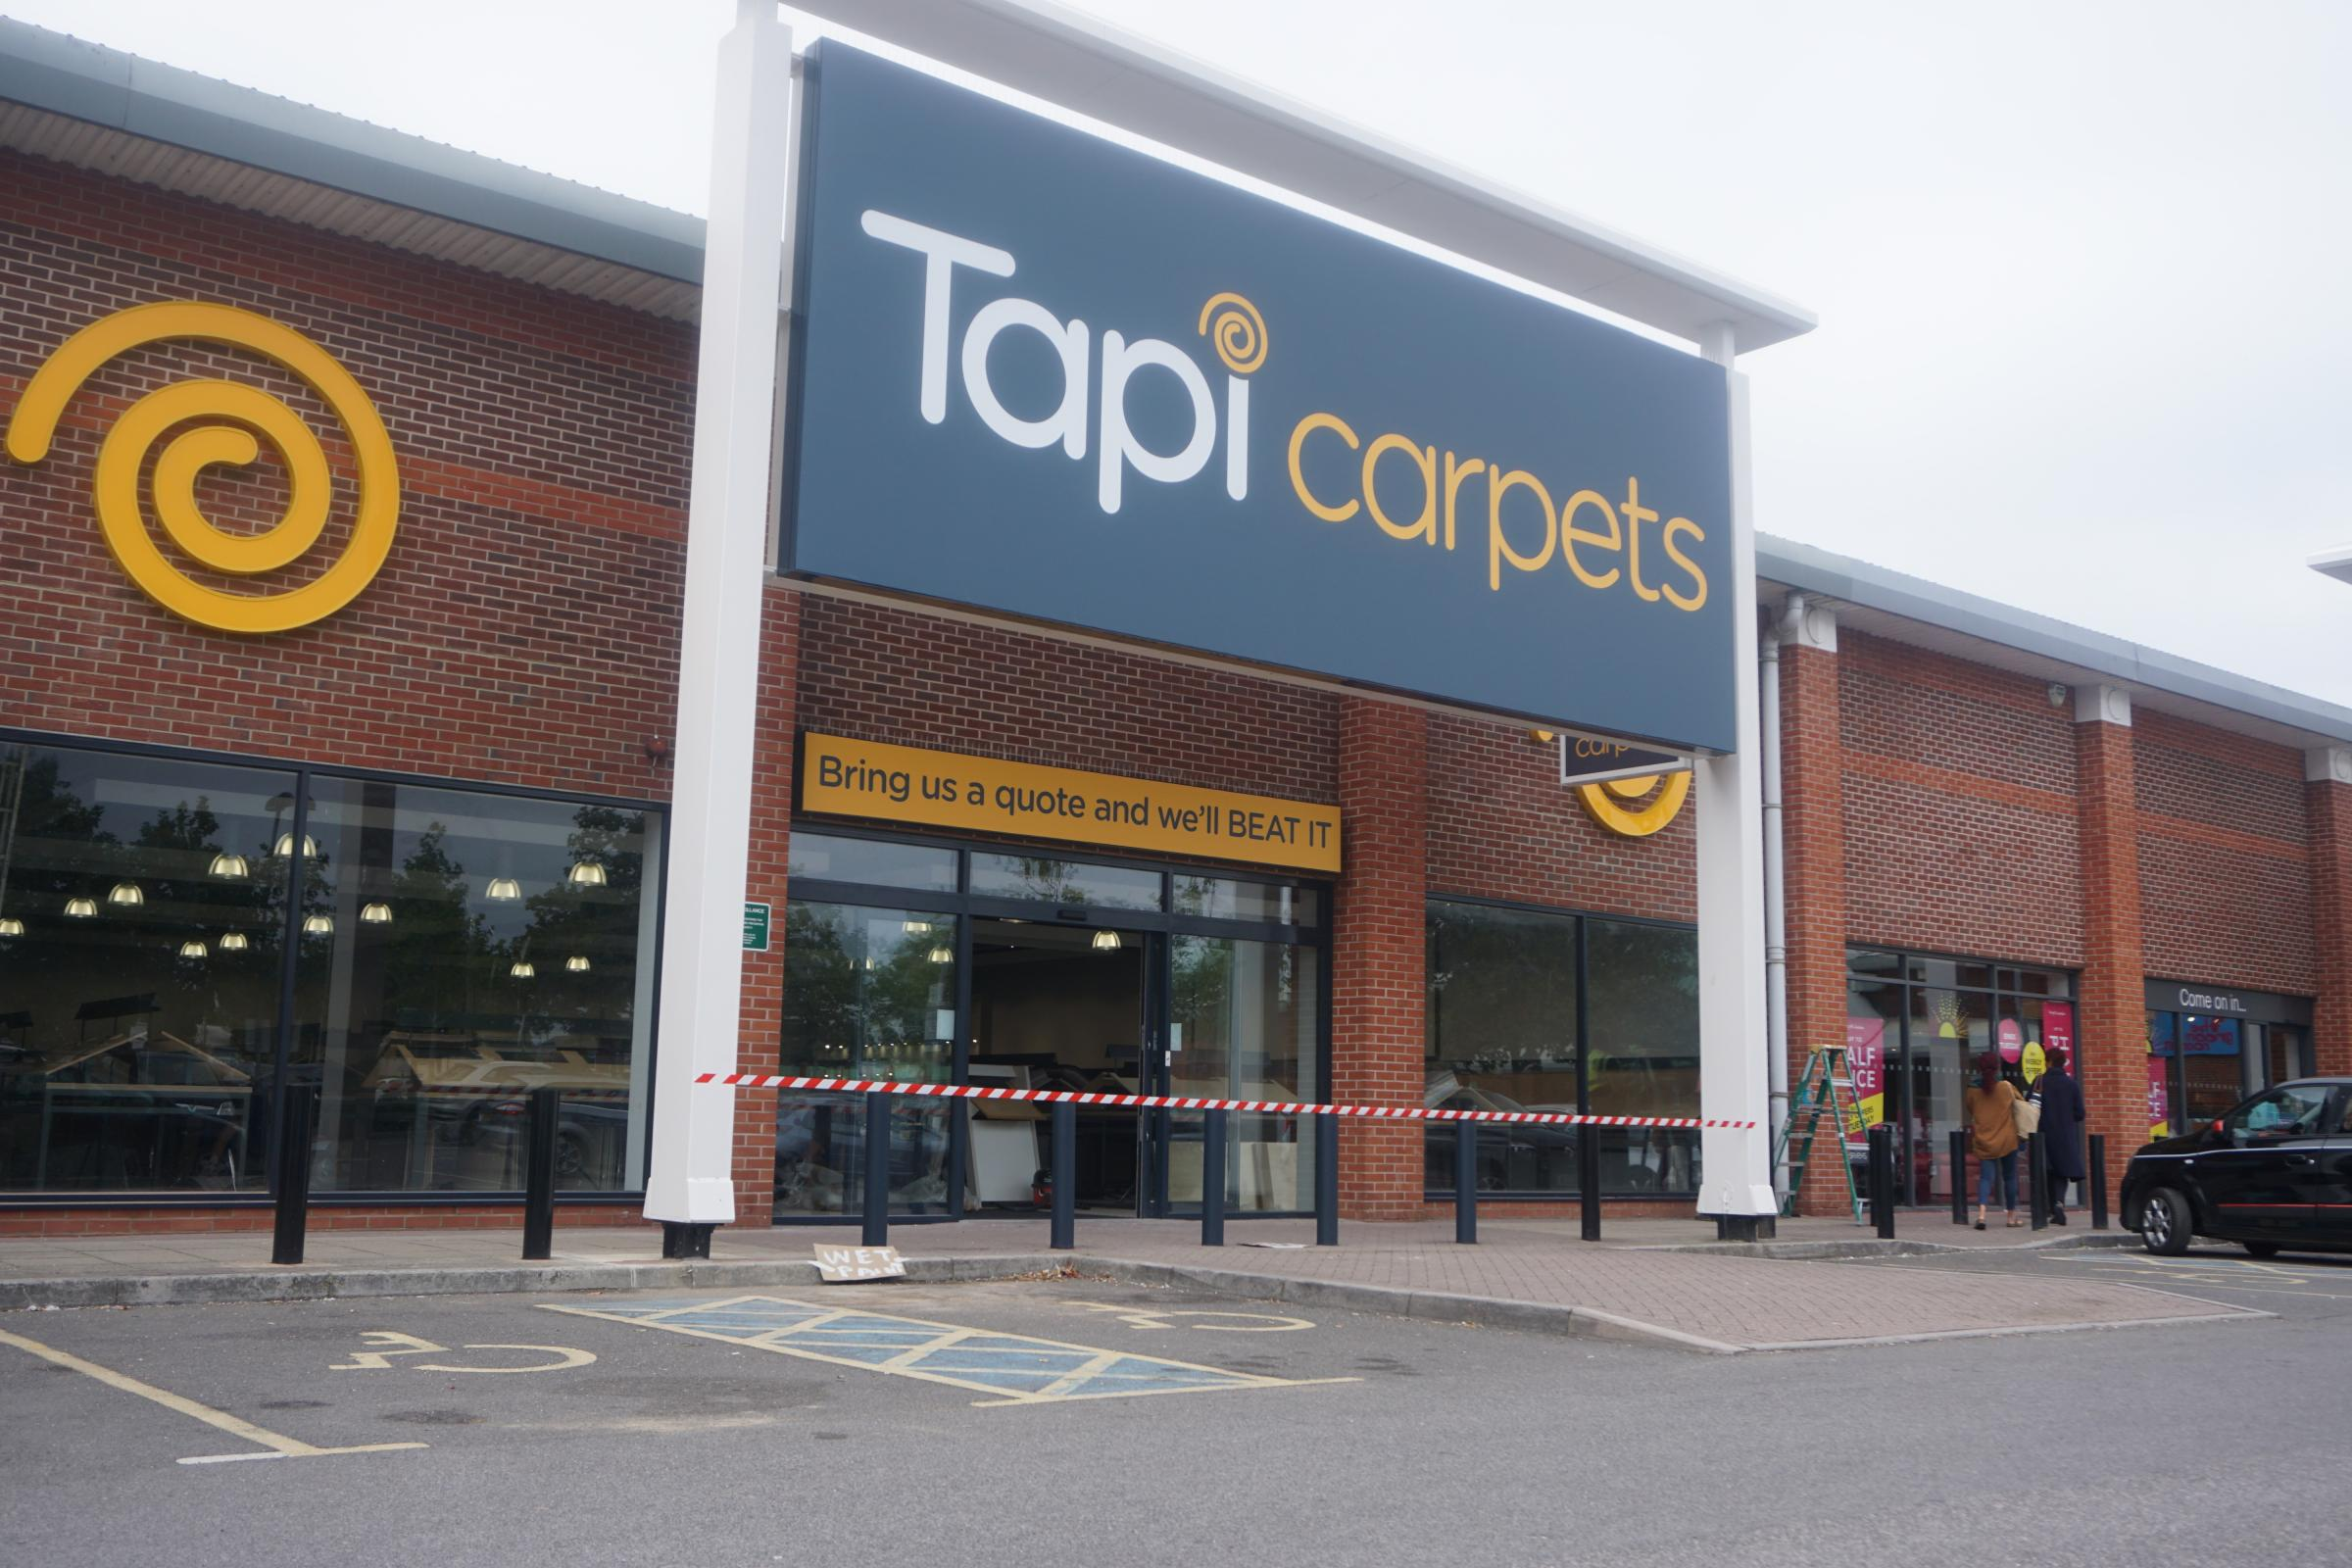 The new Tapi Carpets store set to open at the retail park of Barrack Road in Christchurch